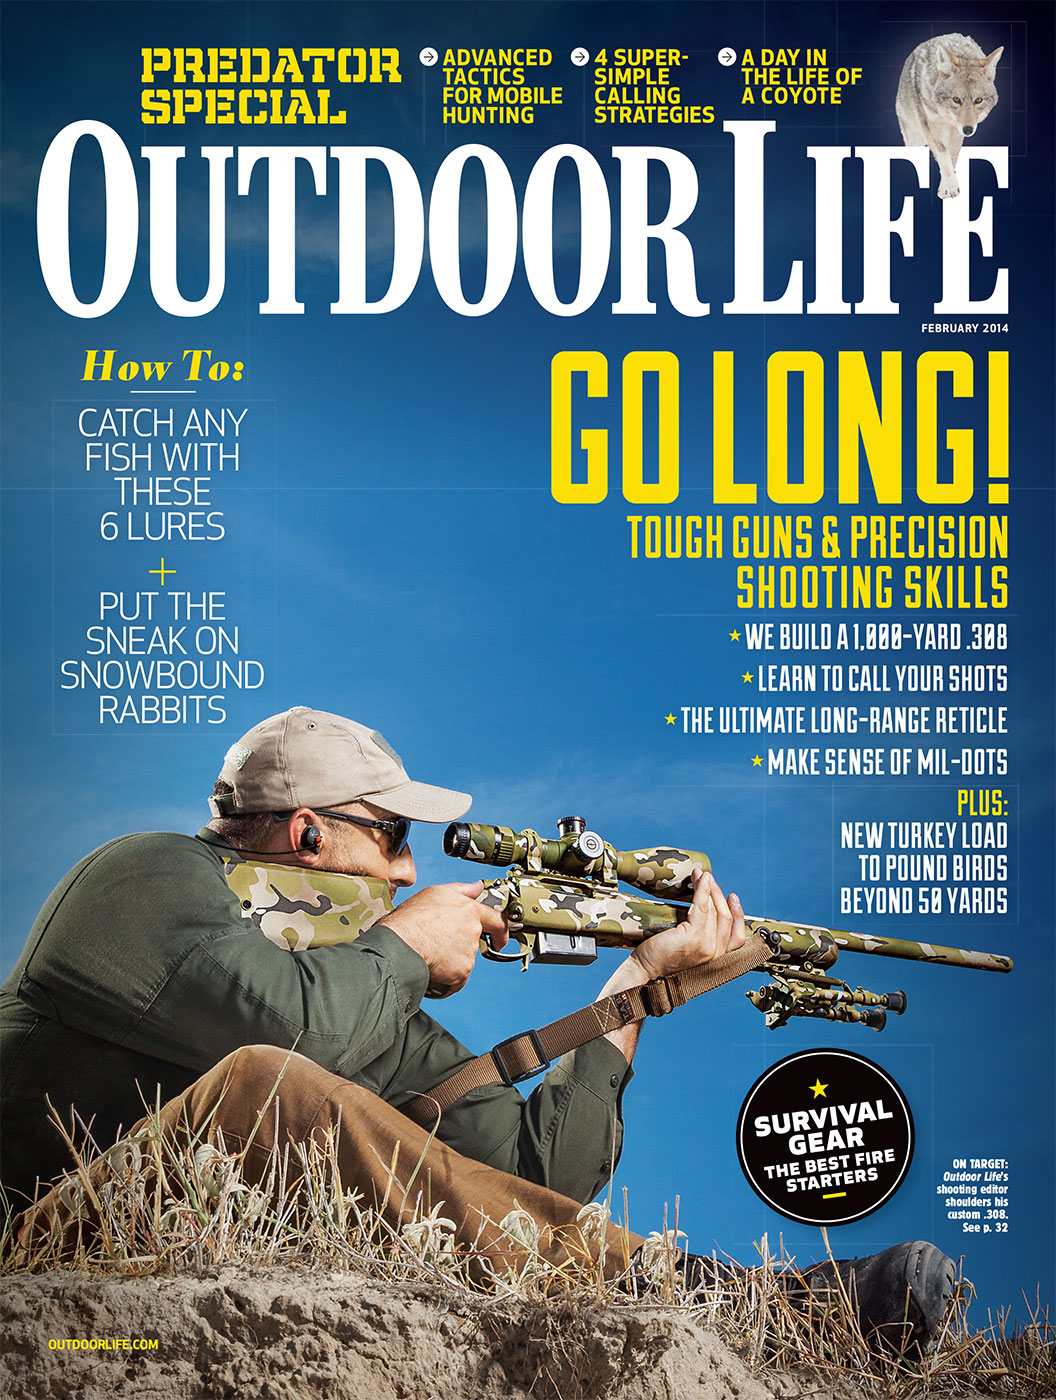 OUTDOOR LIFE FEBRUARY 2014